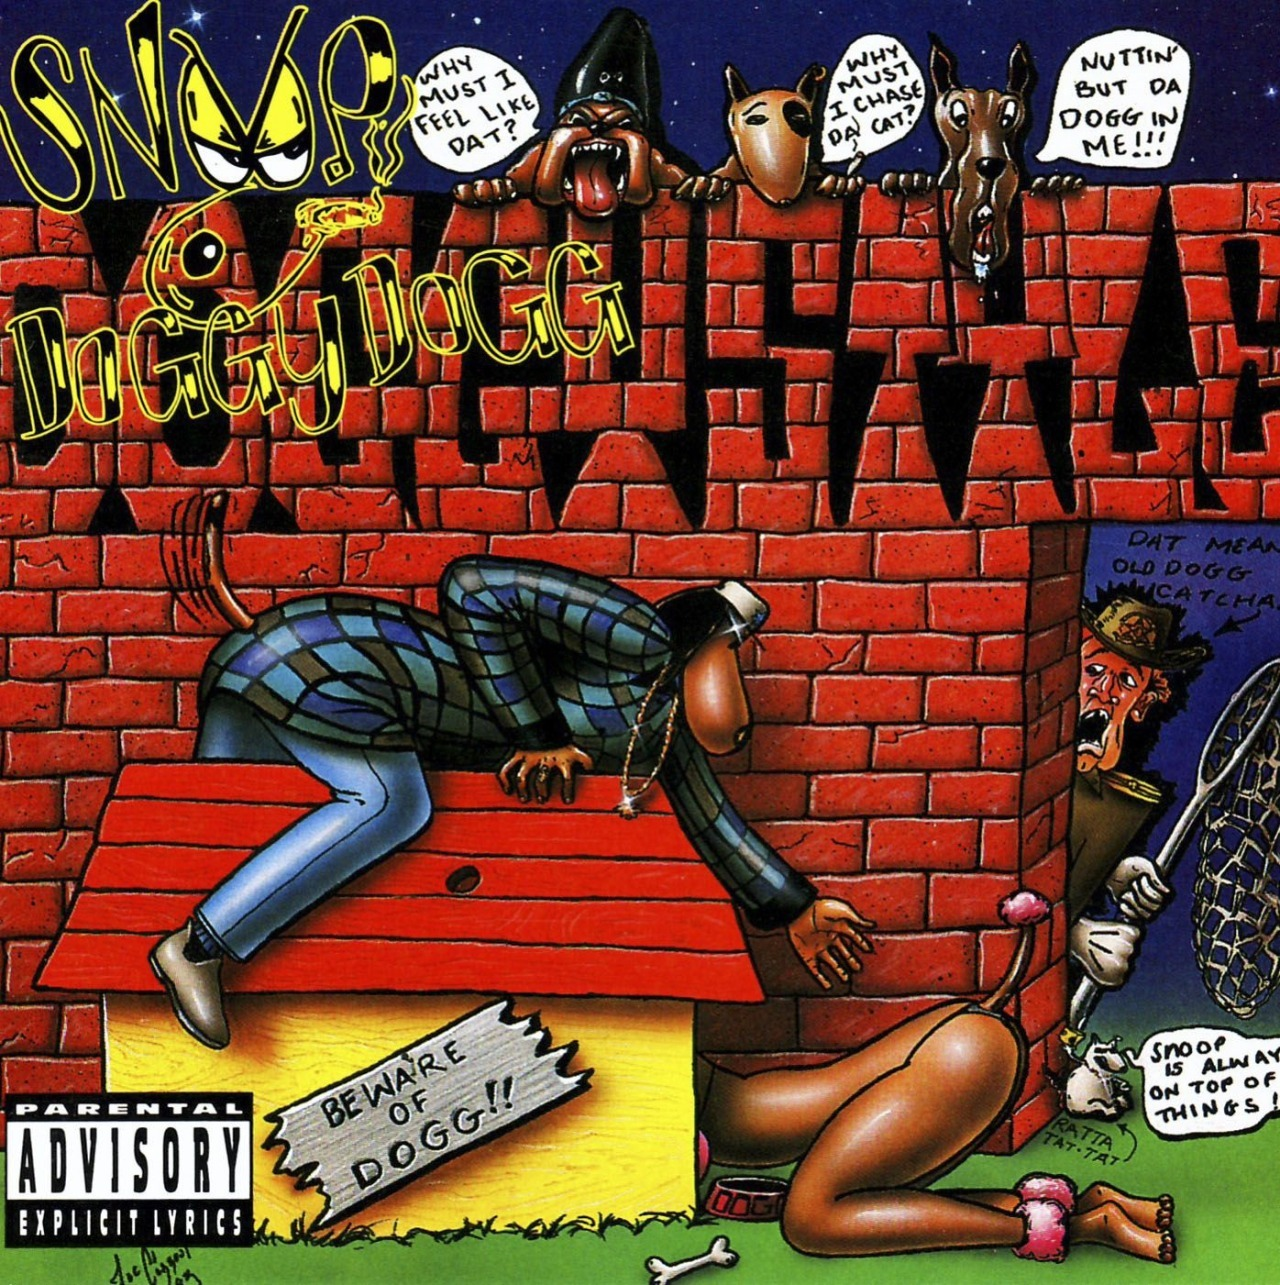 Today in Hip-Hop History: Snoop Dogg Drops Debut Album 'Doggystyle' 27 Years Ago